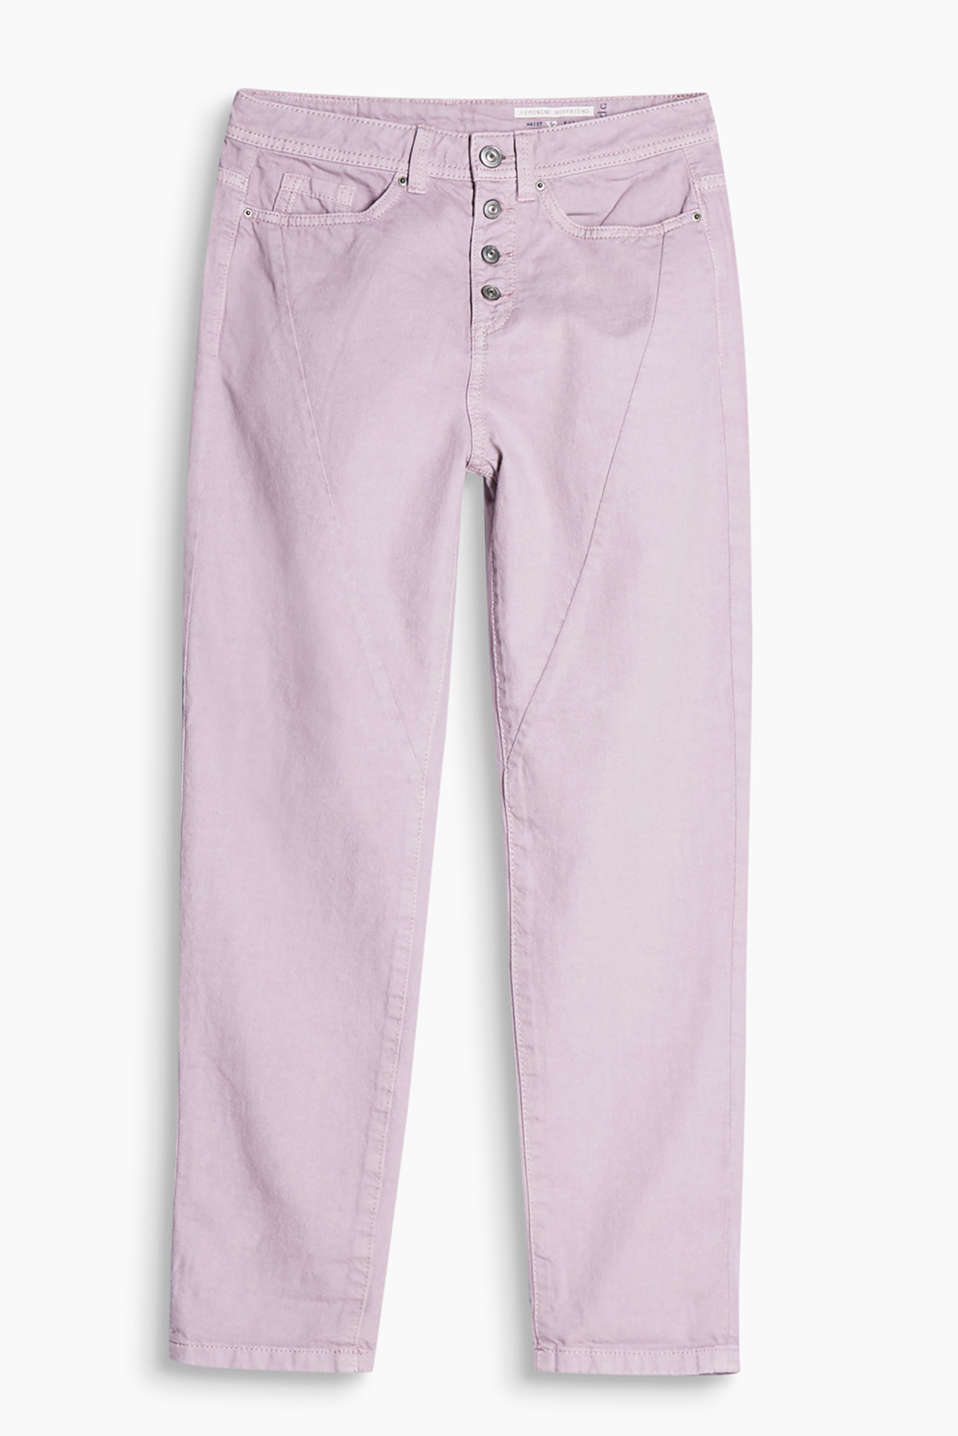 5 pocket, cotton twill trousers with diagonal dividing seams and a striking button fly